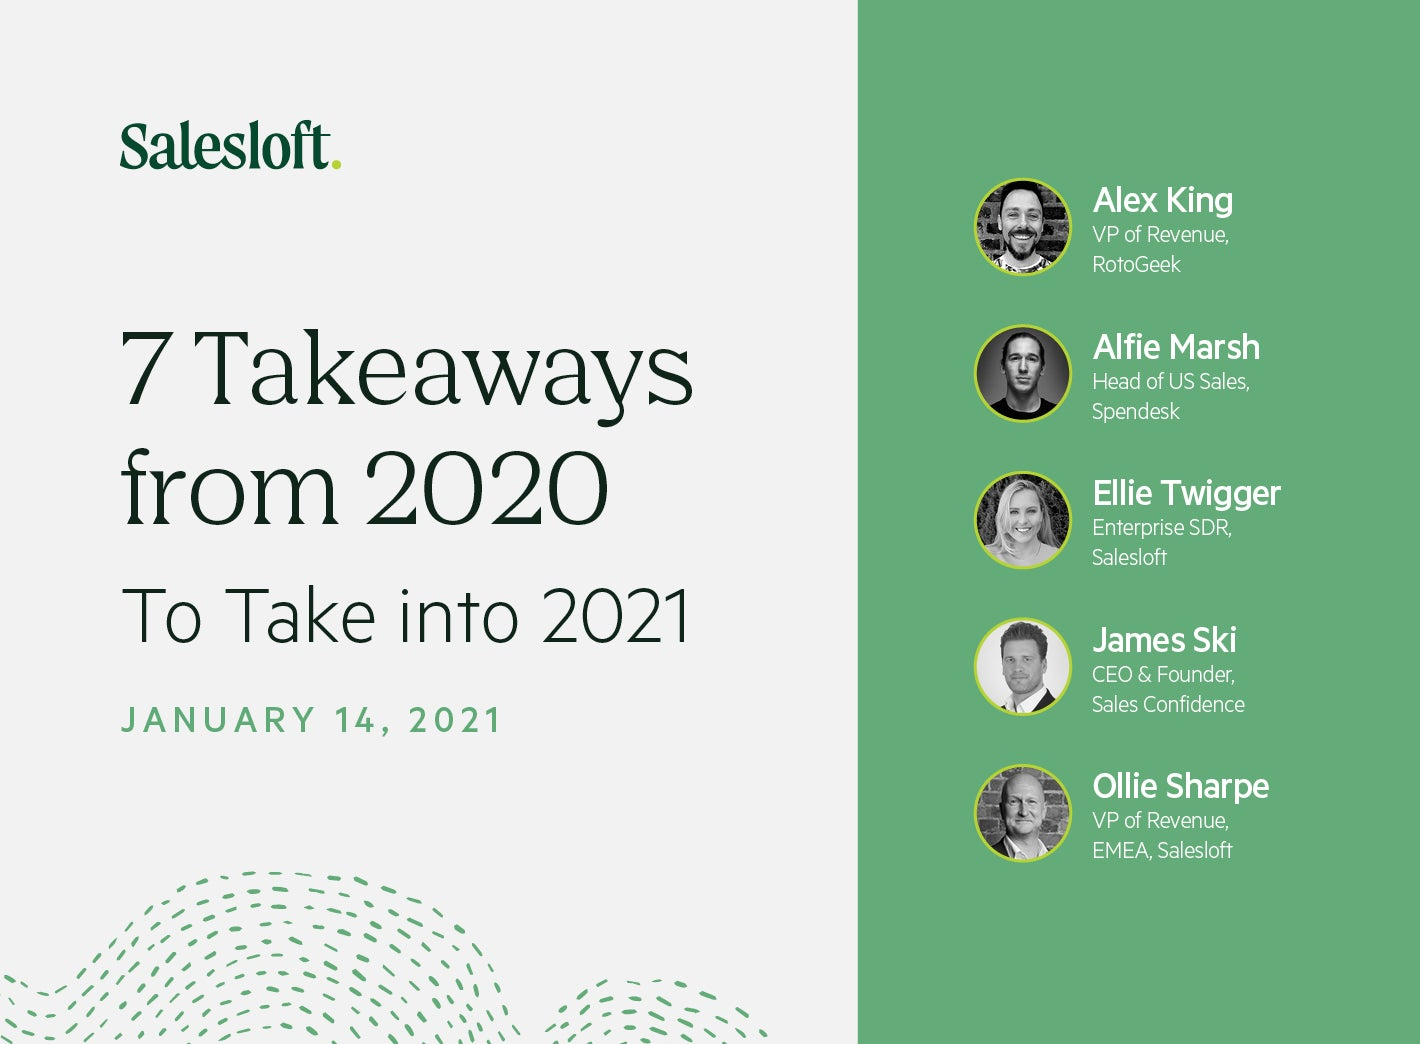 7 Biggest Takeaways from 2020 to Take Into 2021